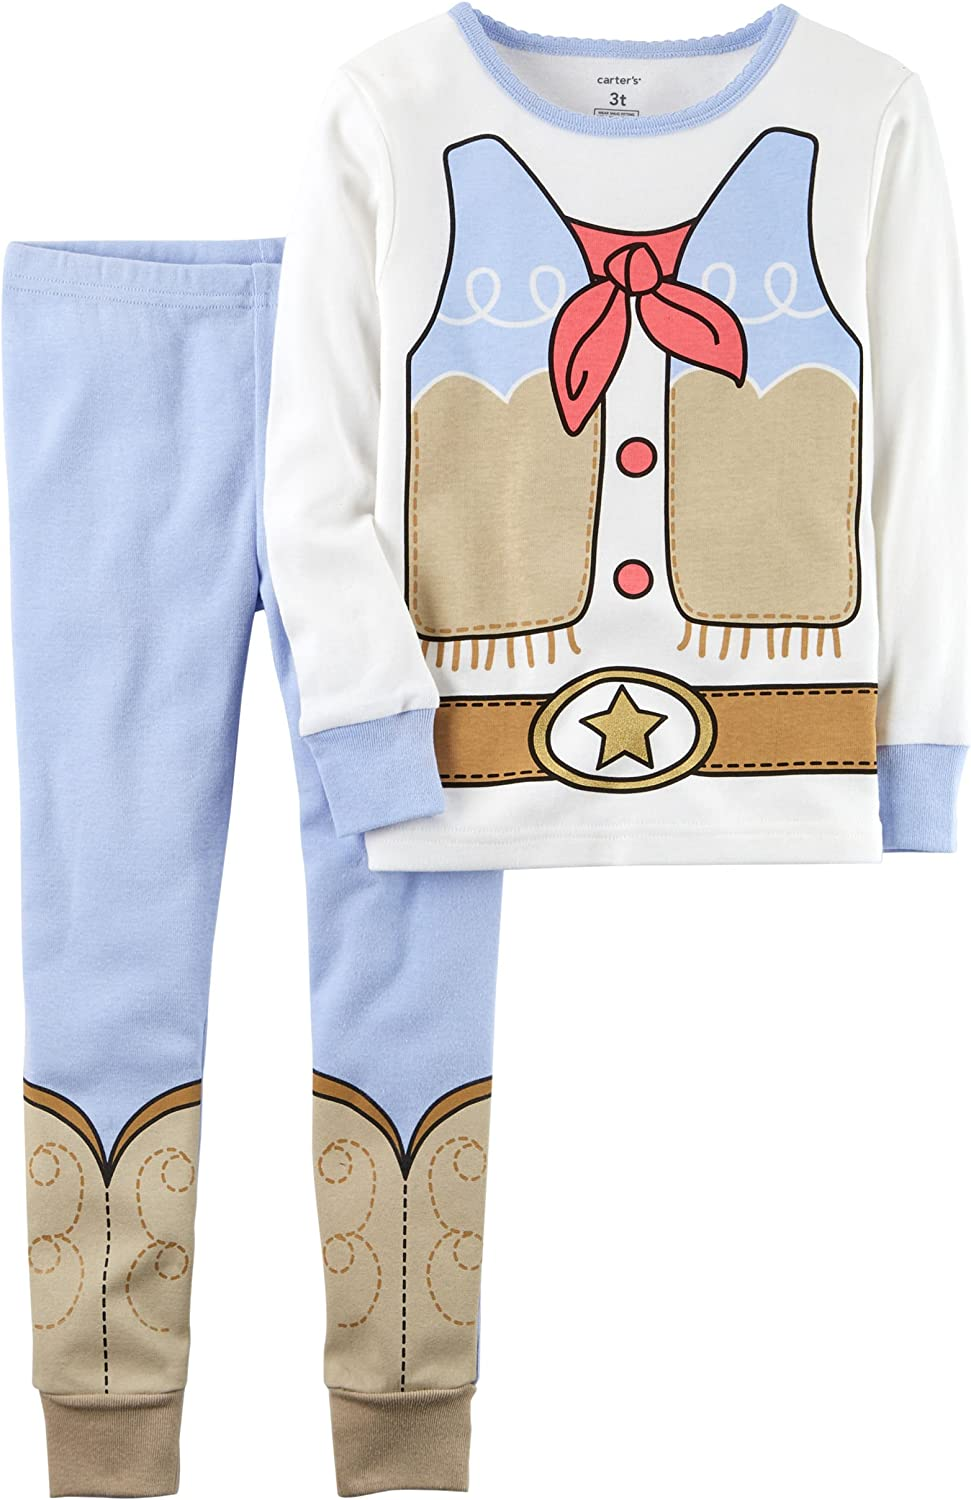 Carters Baby Girls 2Piece PJ Set 8, Cowgirl Baby